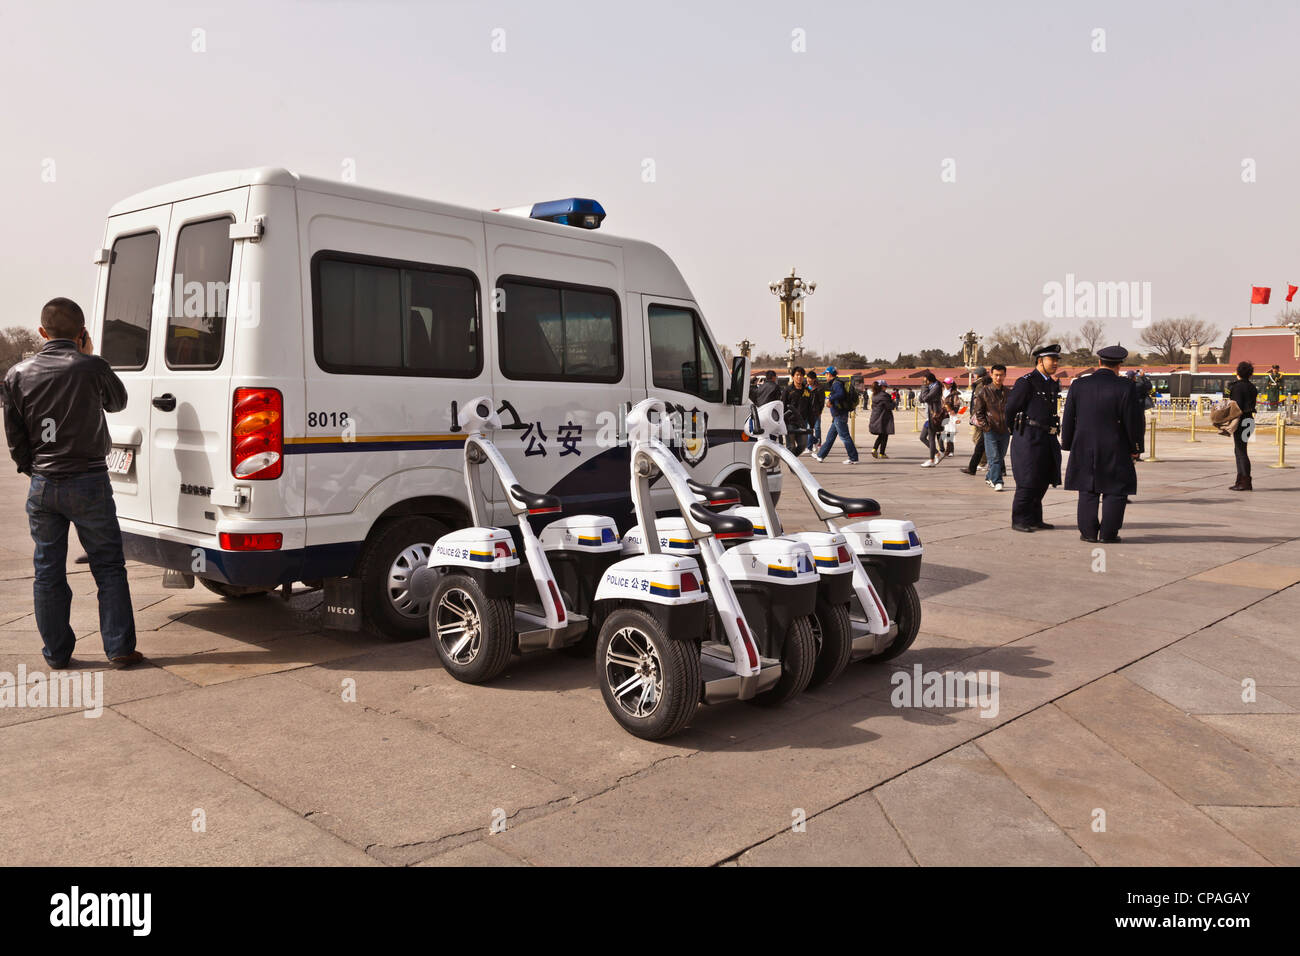 Police T-Robot self-balancing scooters in Tiananmen Square, Beijing, China, - Stock Image